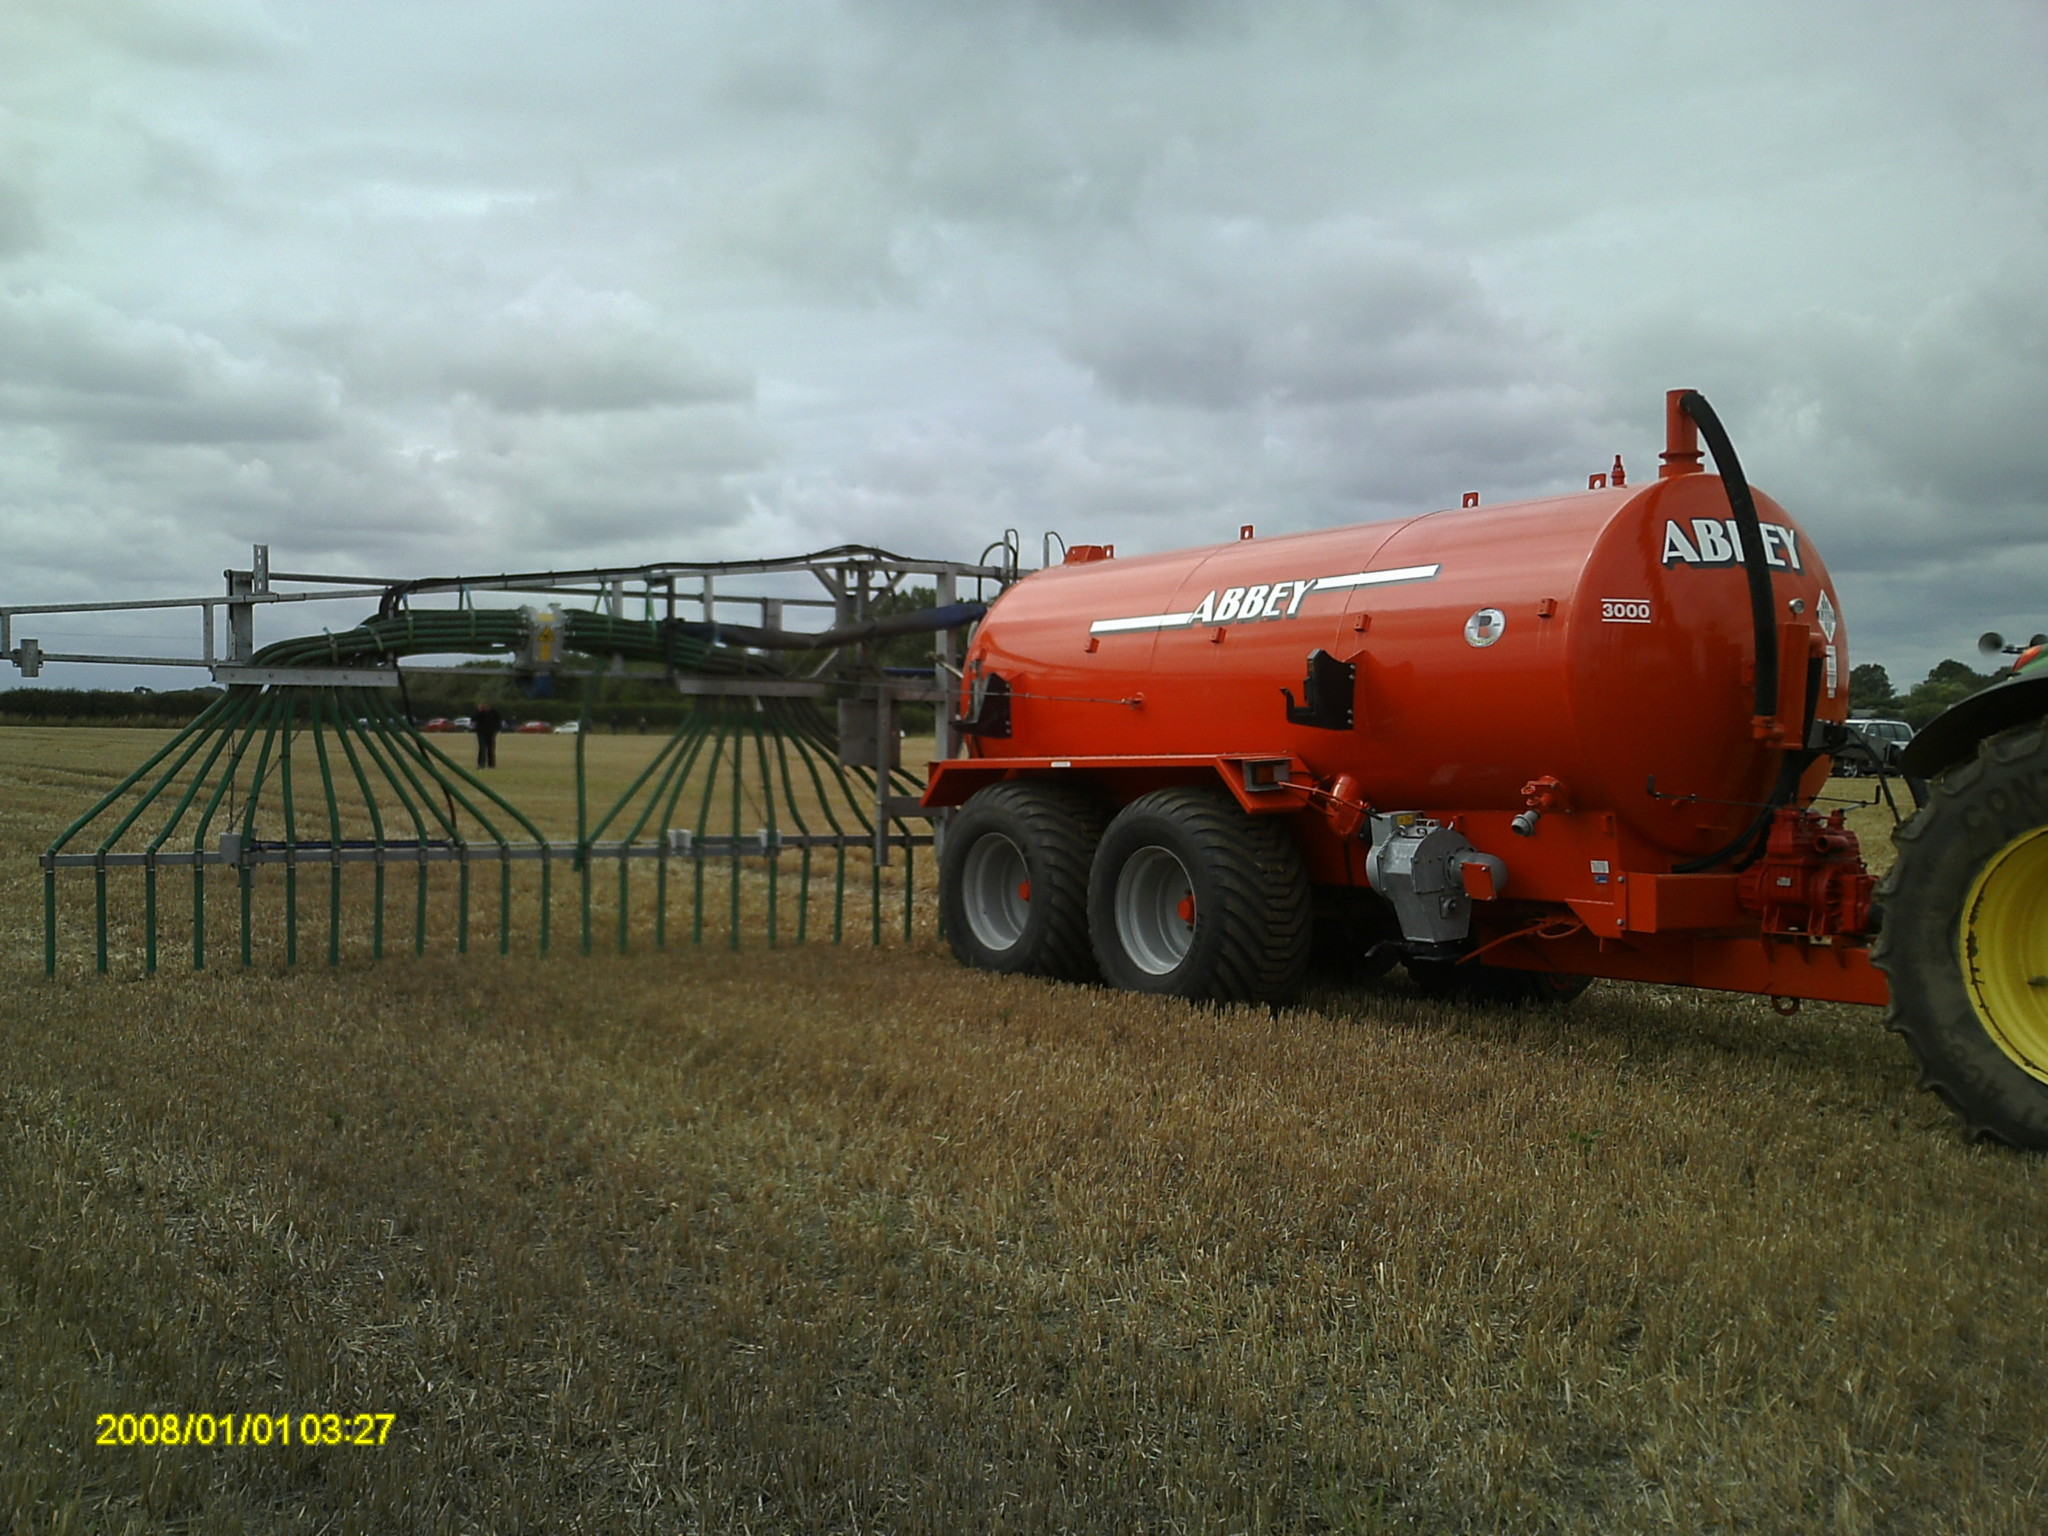 Abbey Slurry Applicators Range